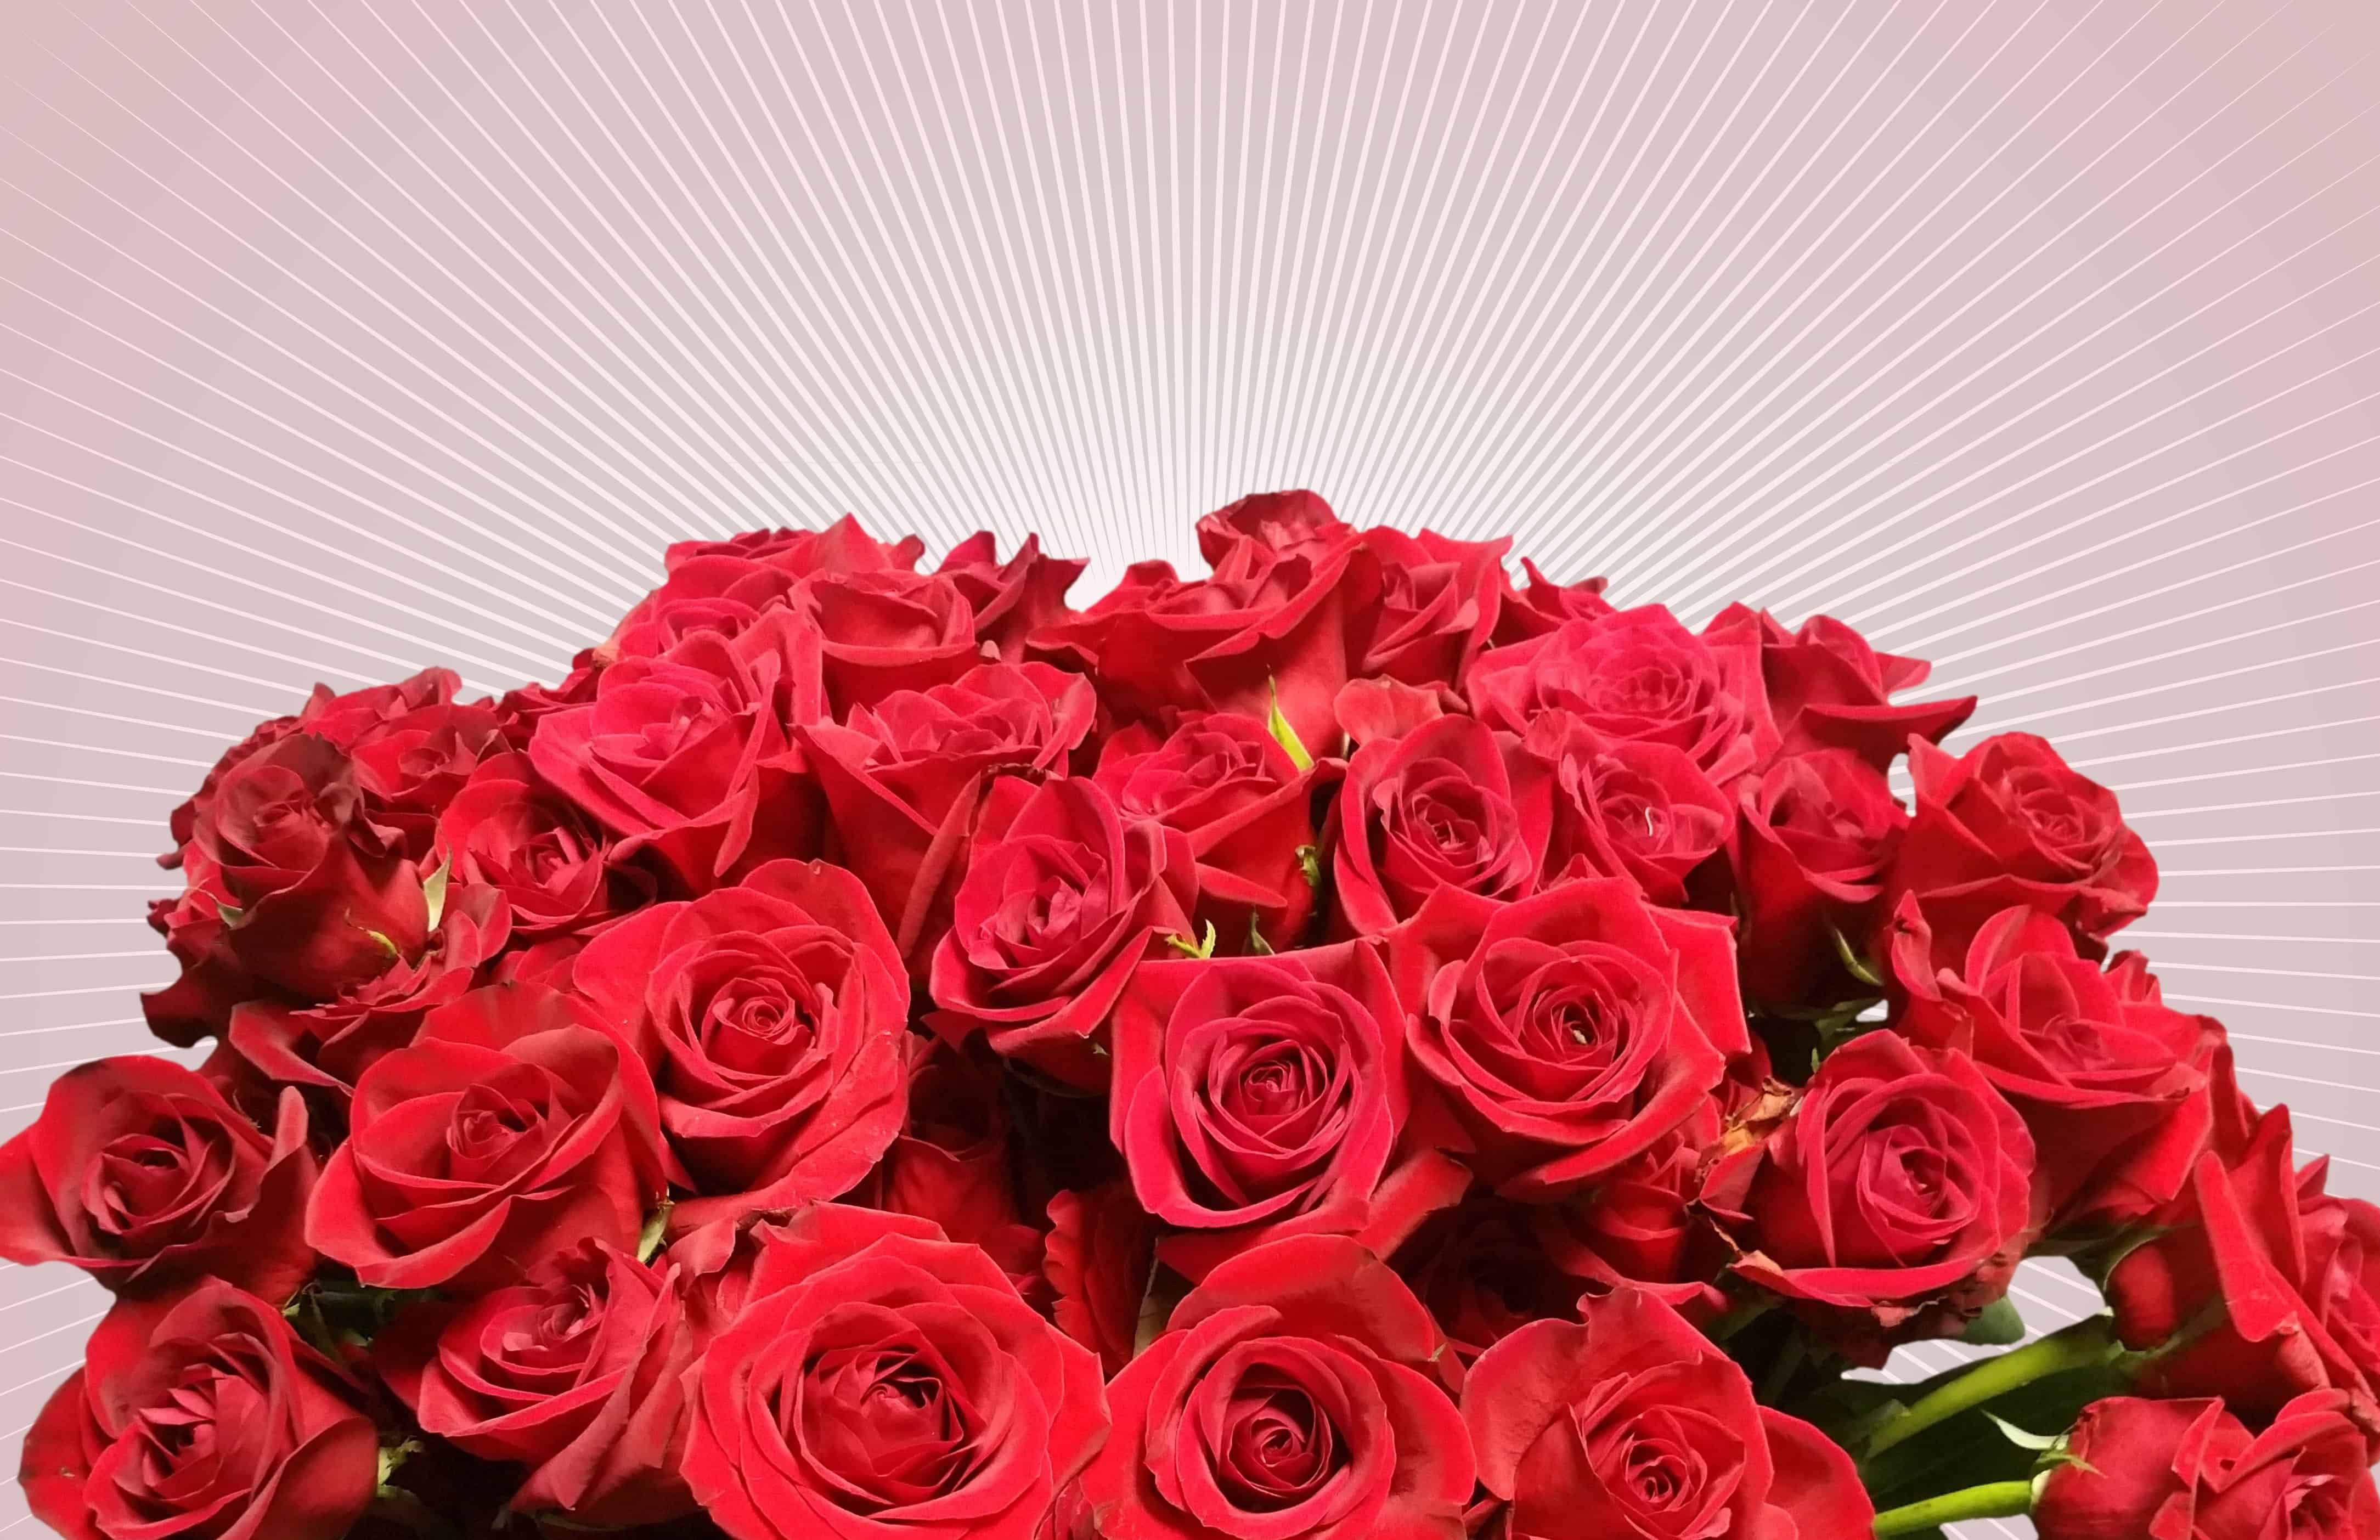 Free Picture Bouquet Red Flower Petal Rose Petals Blossom